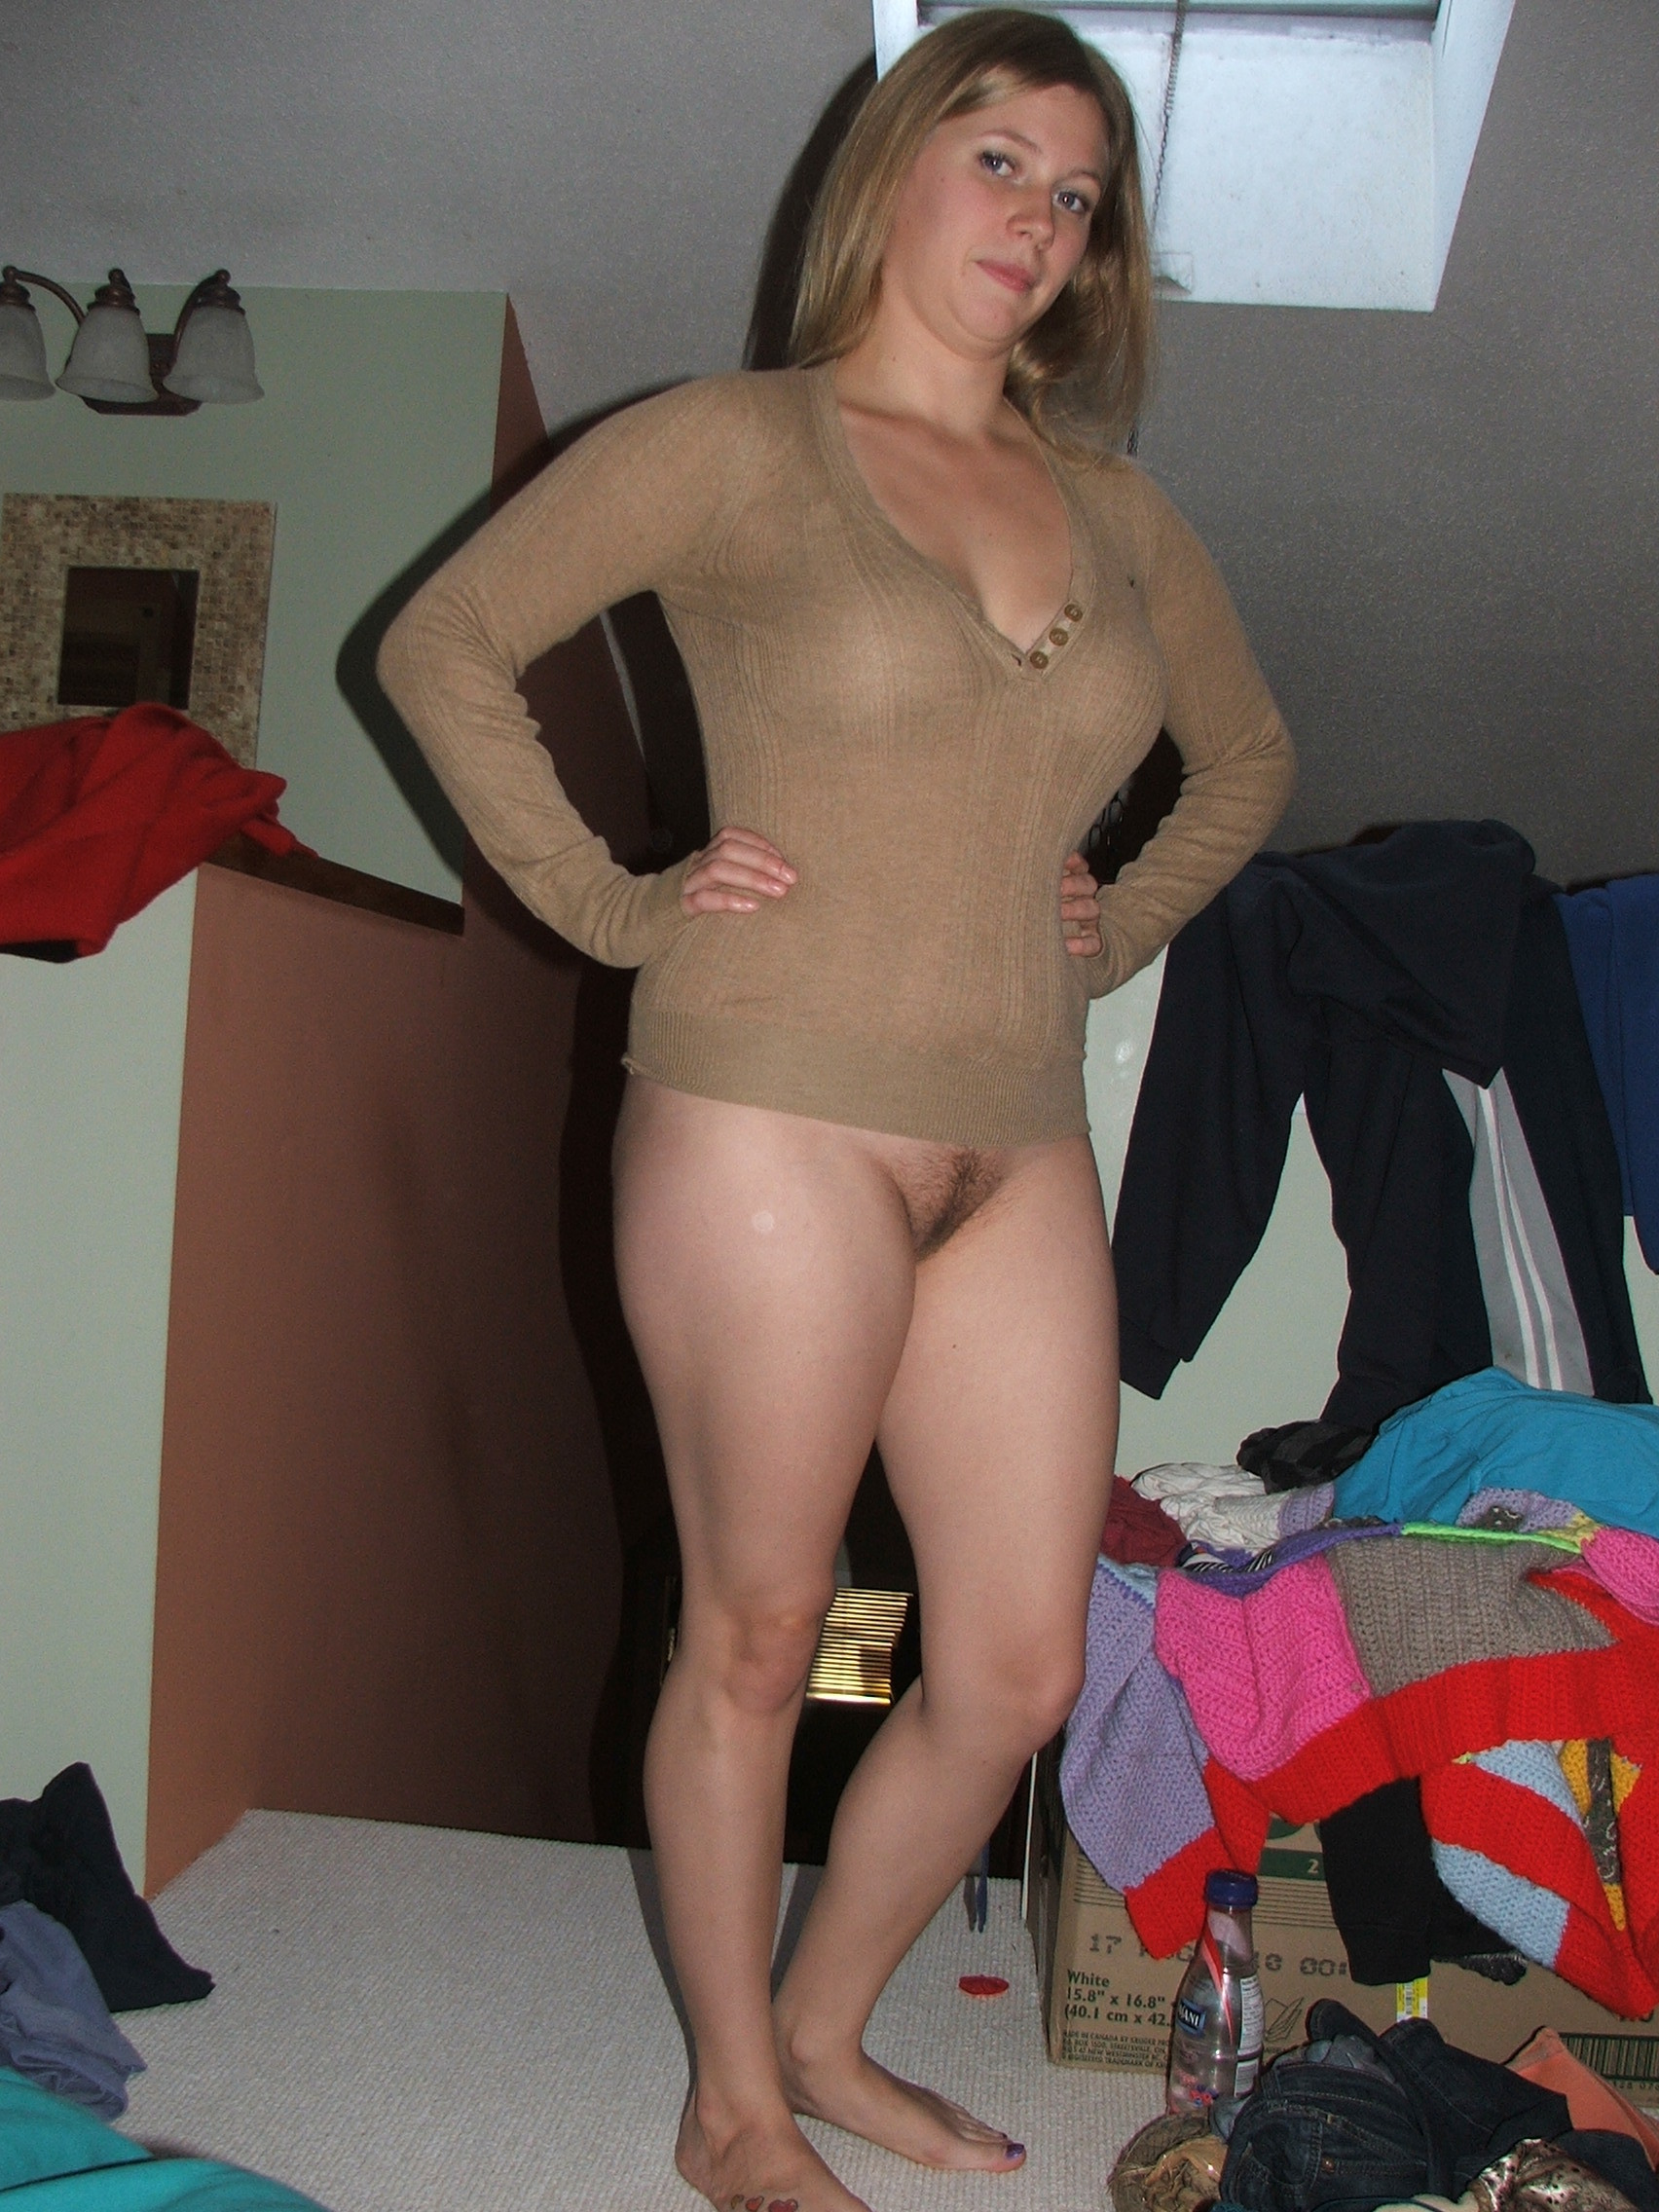 Rose sovine escort ohio